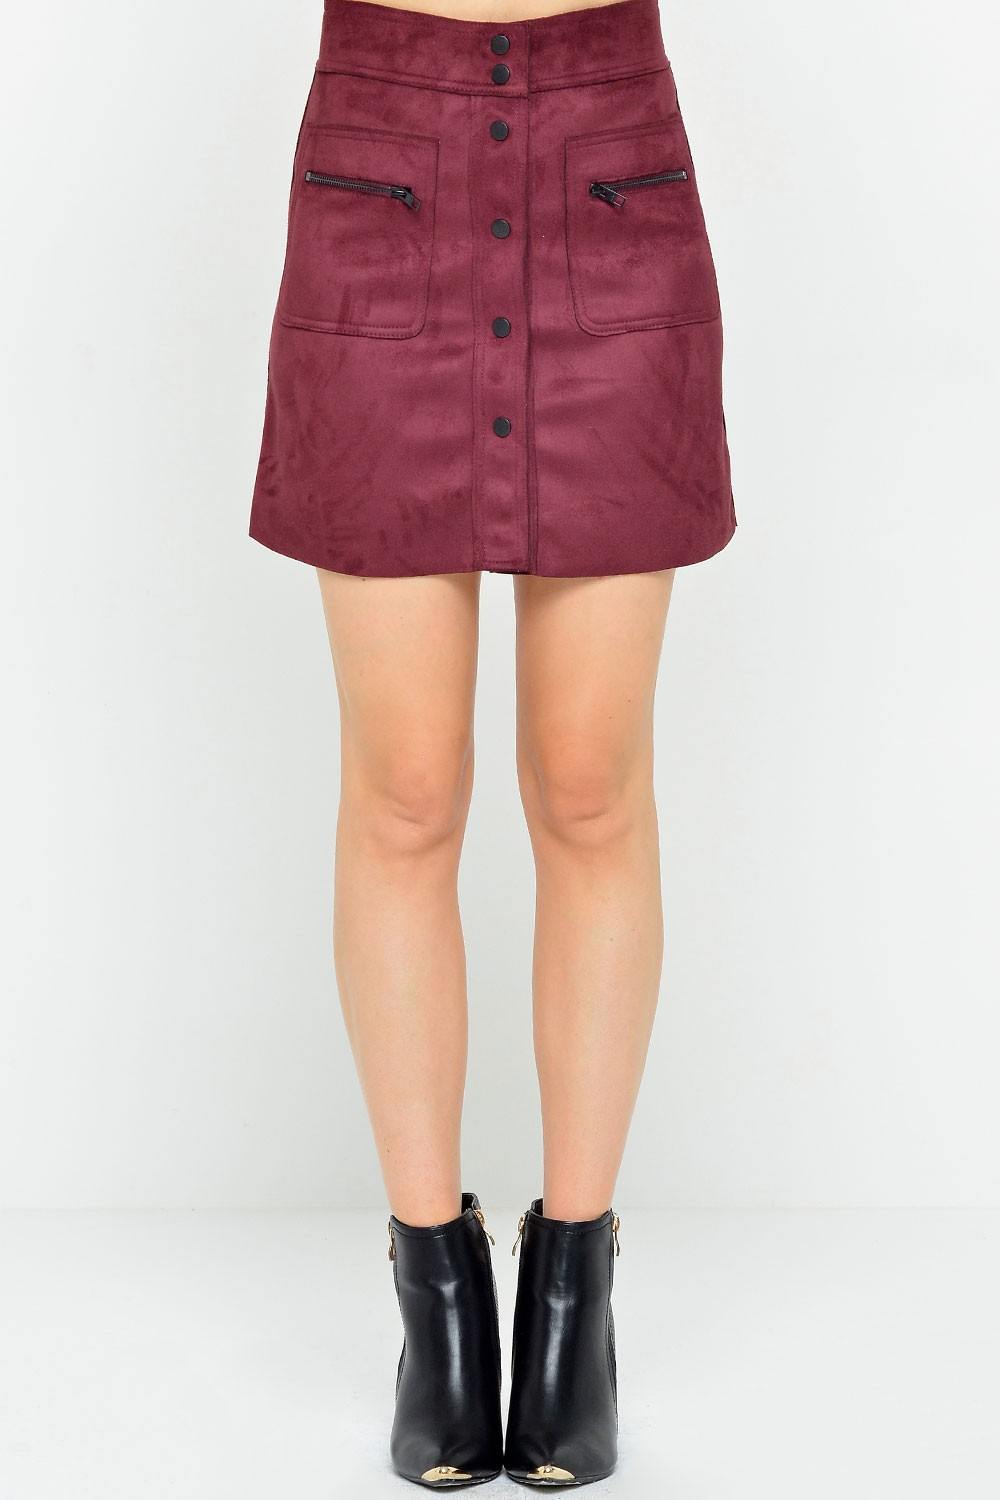 Olivia Bonded Faux Suede Skirt in Burgundy